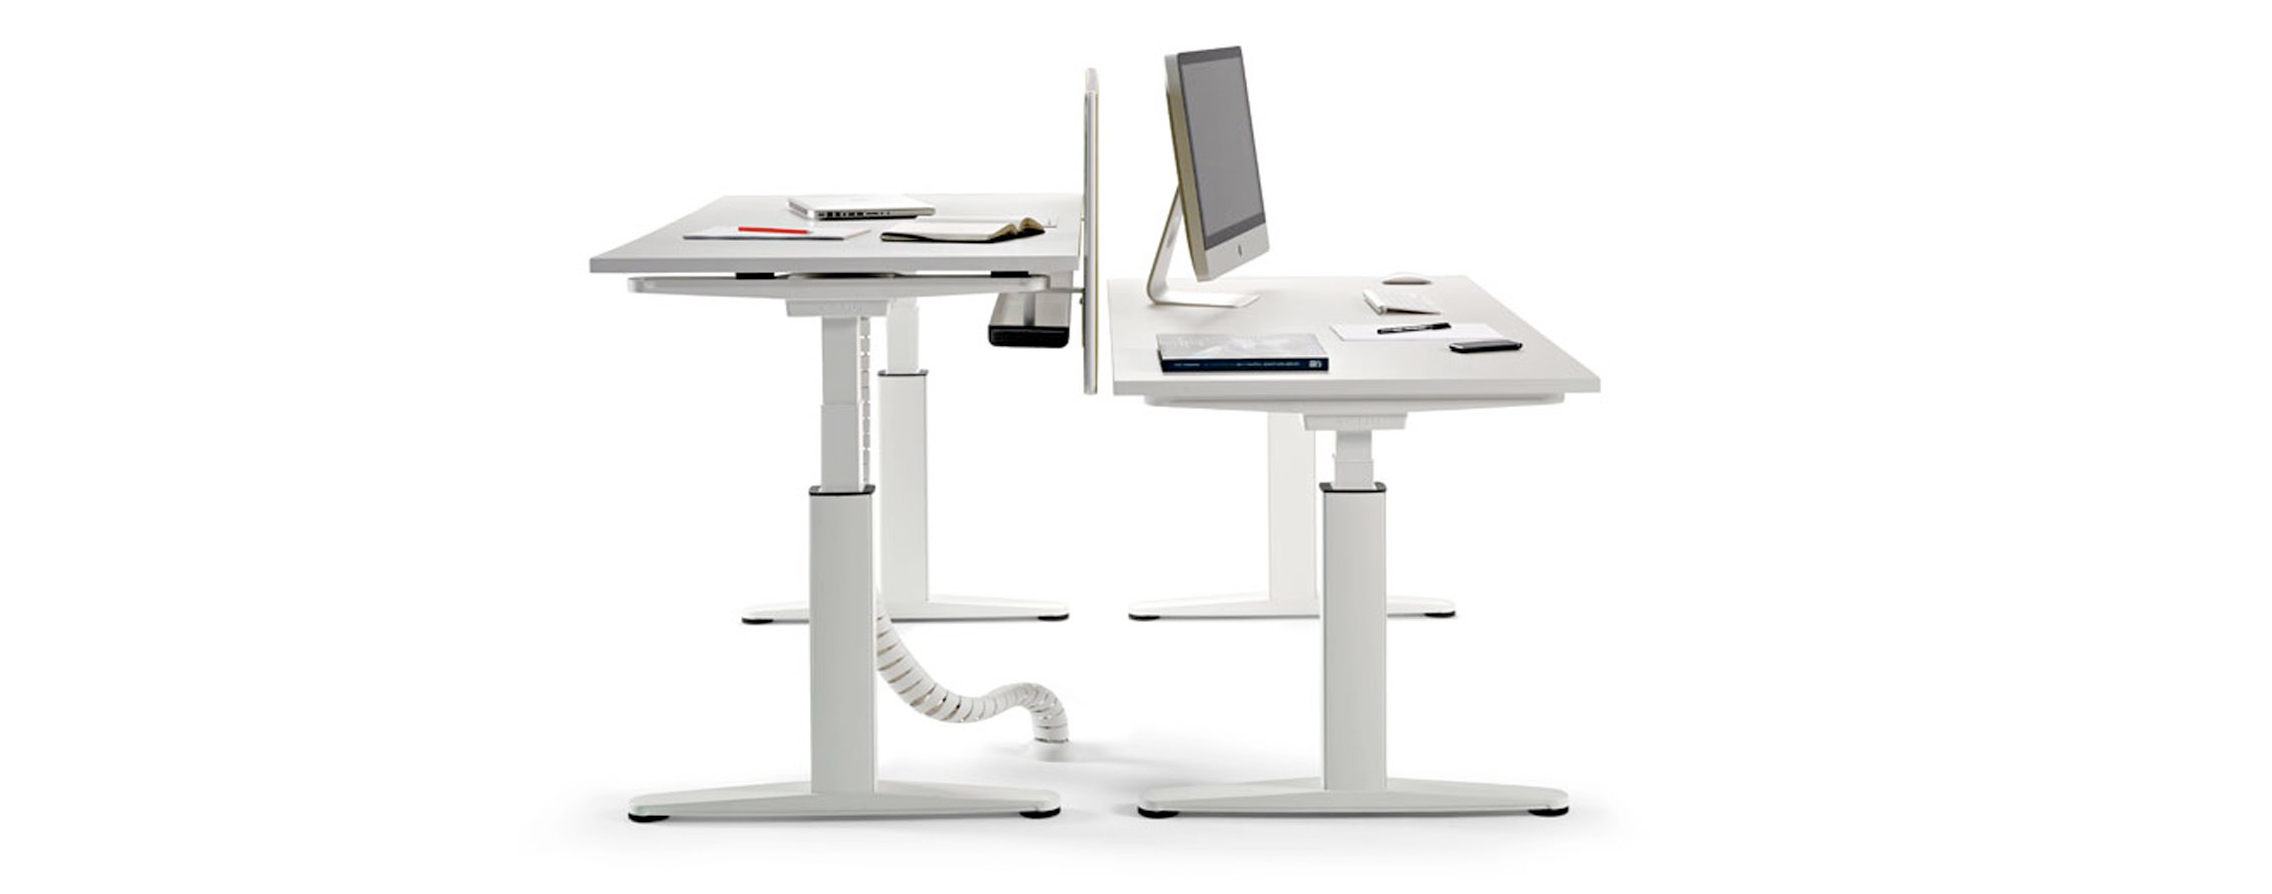 We'll give you a leg up with these height adjustable desks   Apres ... - We'll give you a leg up with these height adjustable desks   Apres  Furniture News